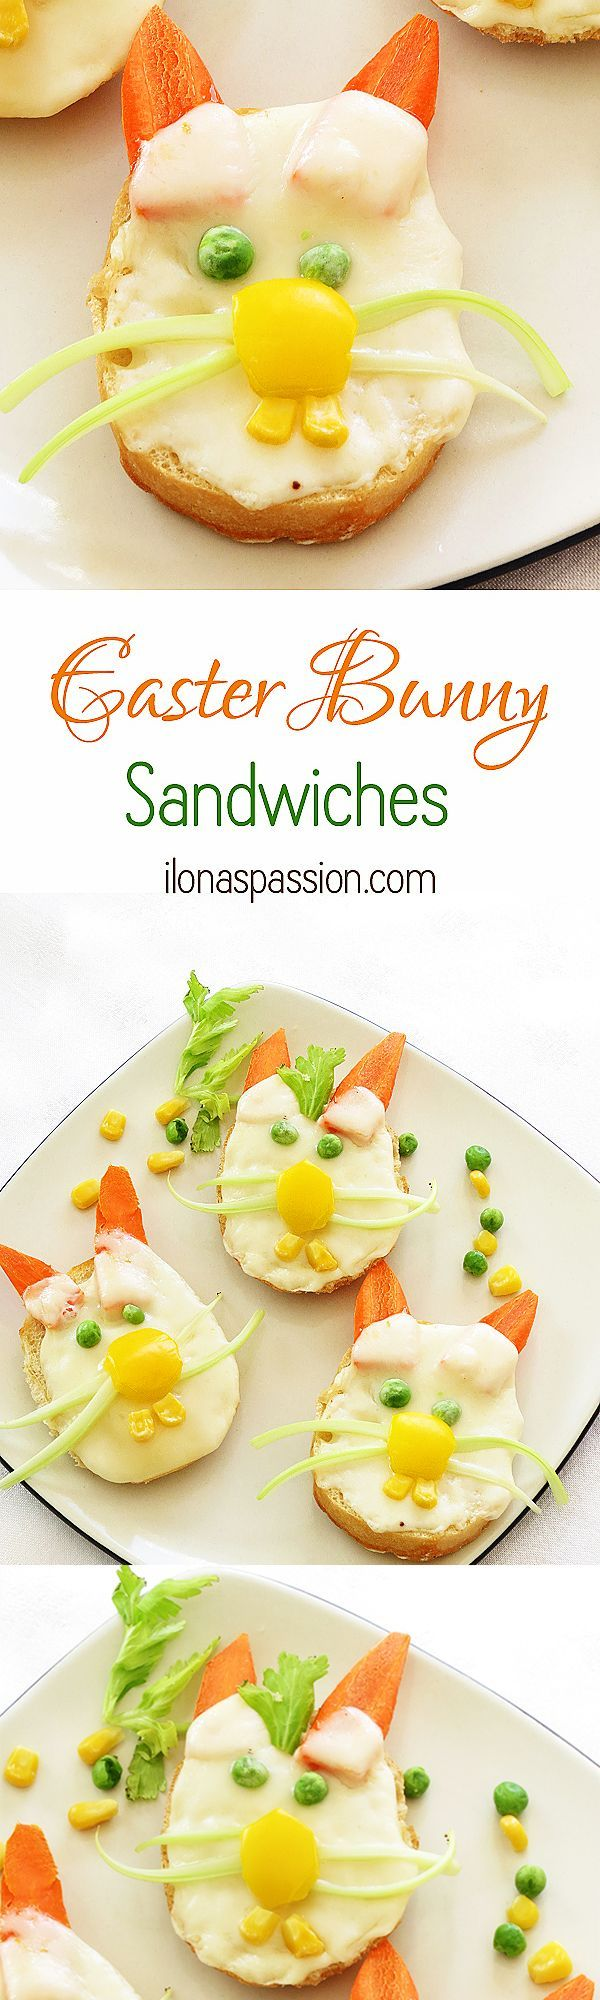 Easter Bunny Sandwiches - Simple, easy and very cute Easter Bunny Sandwiches made with small bagels or french baguette cheese and vegetables. Very adorable recipe and great for a Party! by http://ilonaspassion.com I /ilonaspassion/